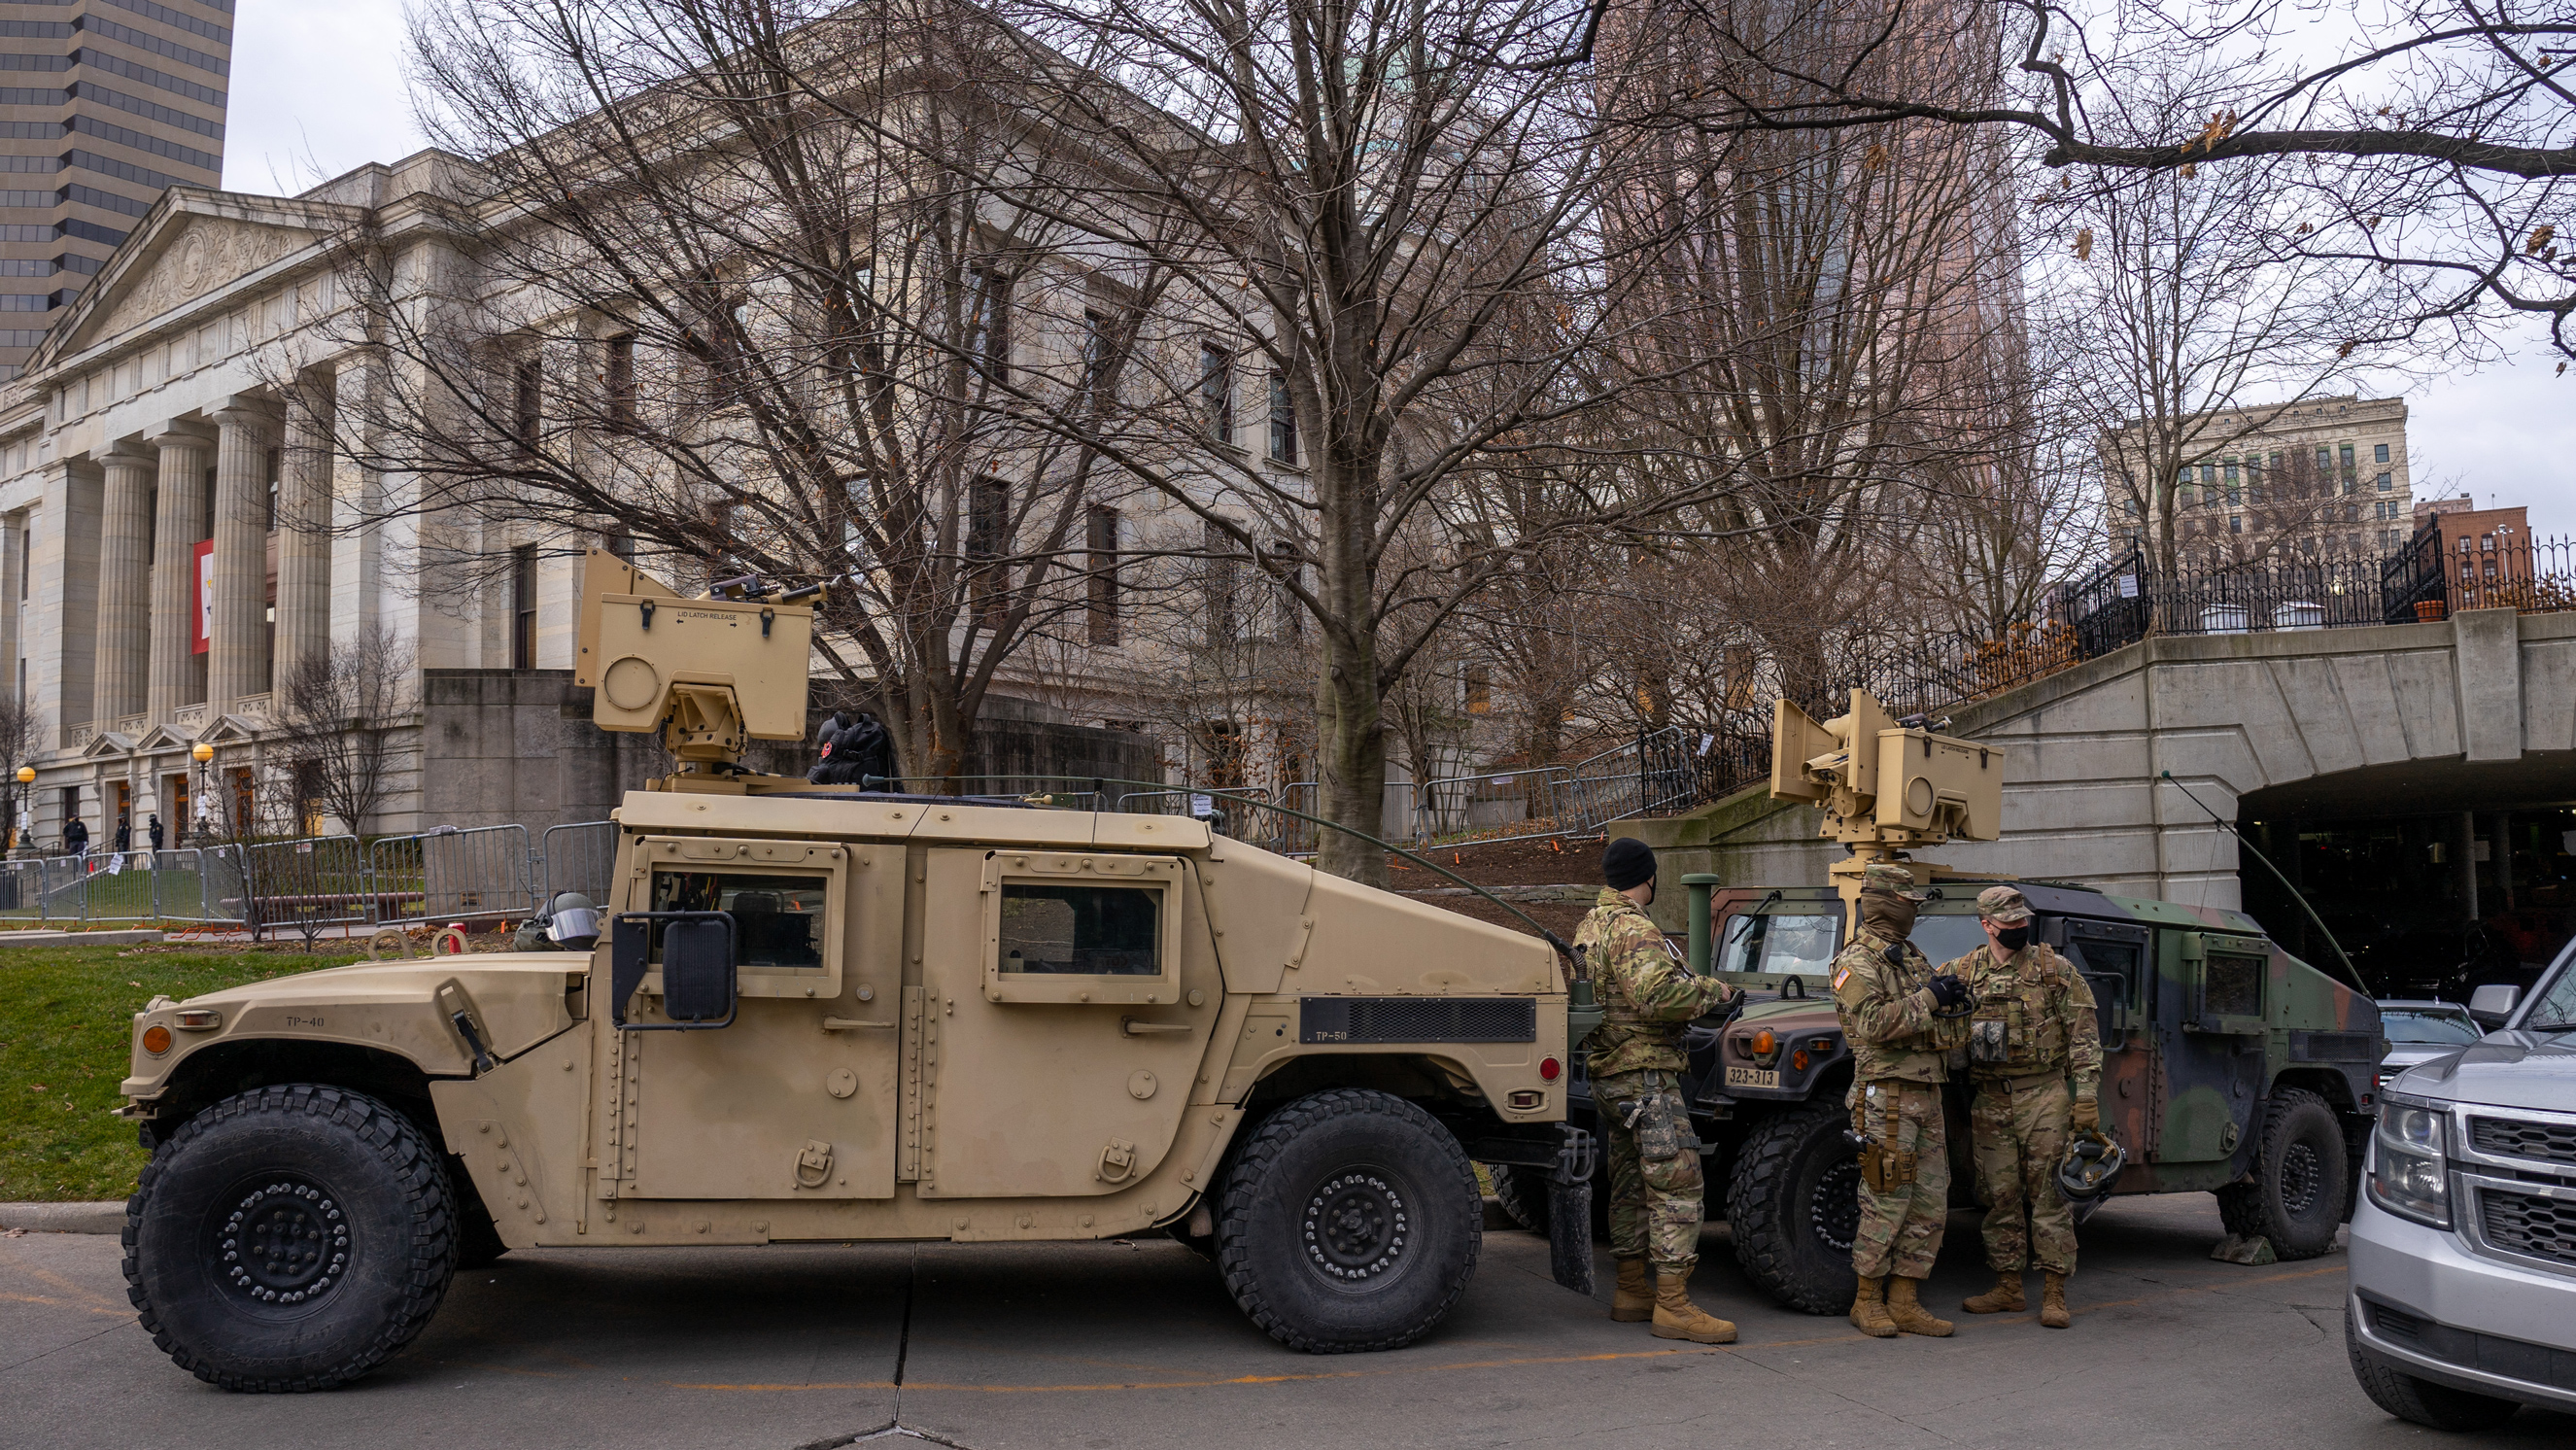 Members of the Ohio National Guard arrive ahead of protests at the Ohio Statehouse on Wednesday, January 20, in Columbus, Ohio.